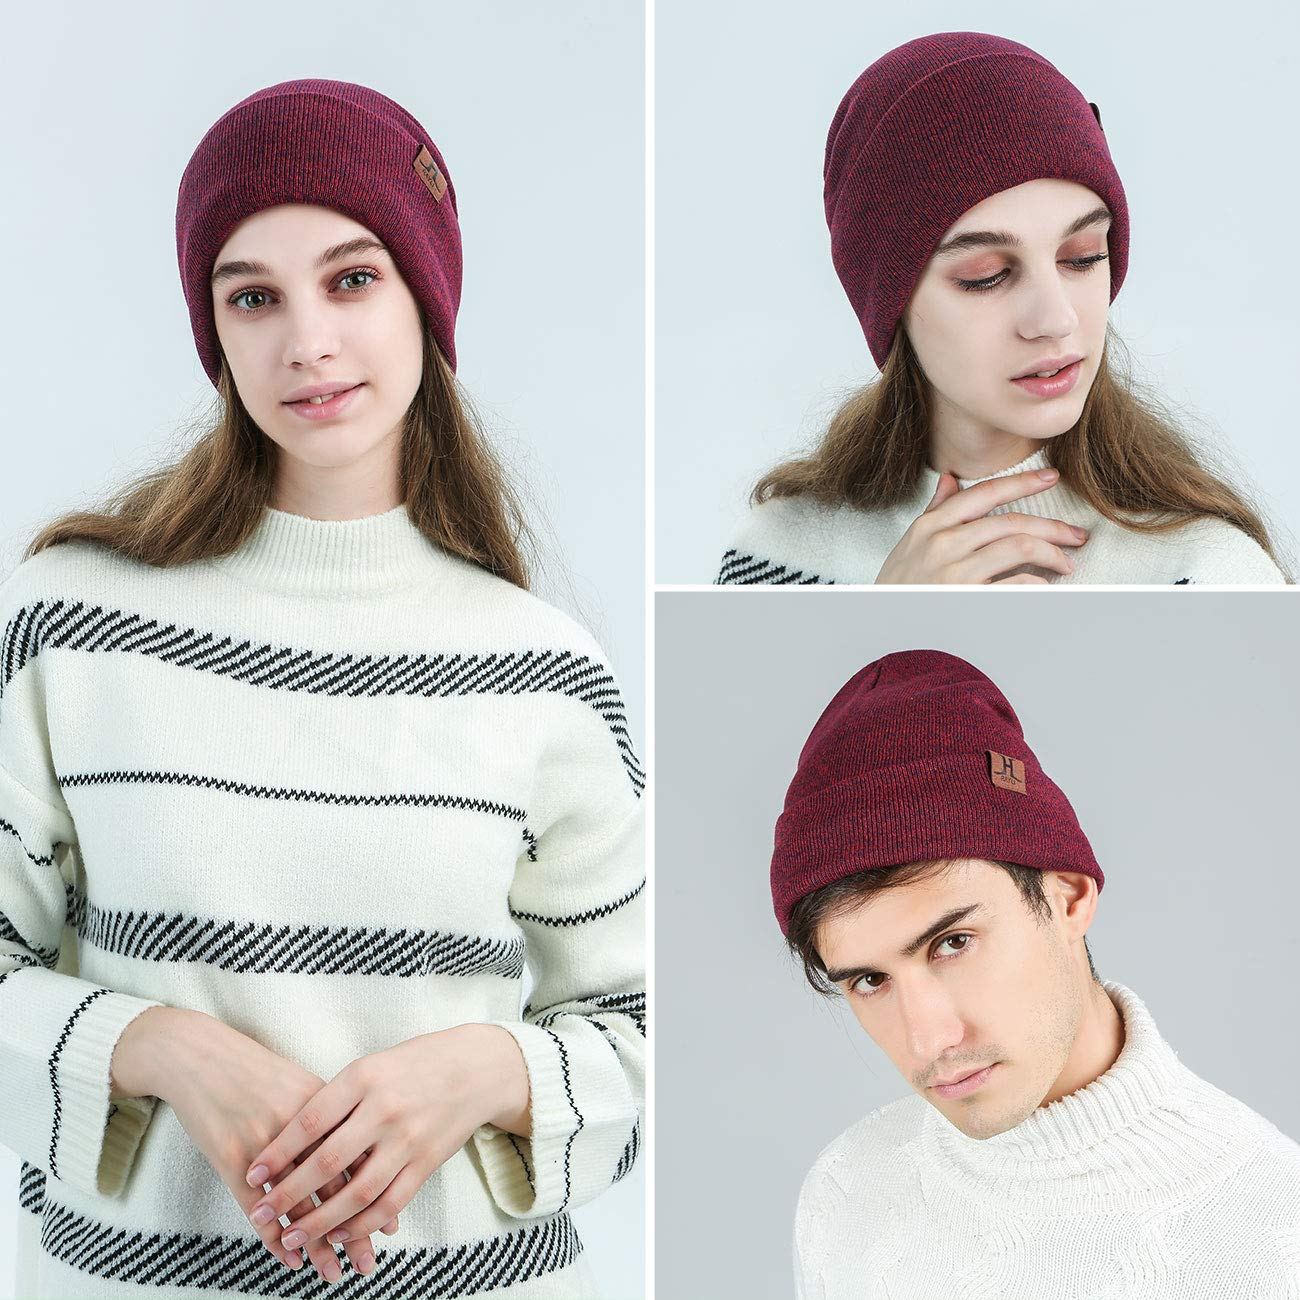 Maylisacc 1//2 Pack Winter Daily Cuff-Beanie Hats Knit Skull-Caps for Men and Women with Warm Fleece Lining Unisex